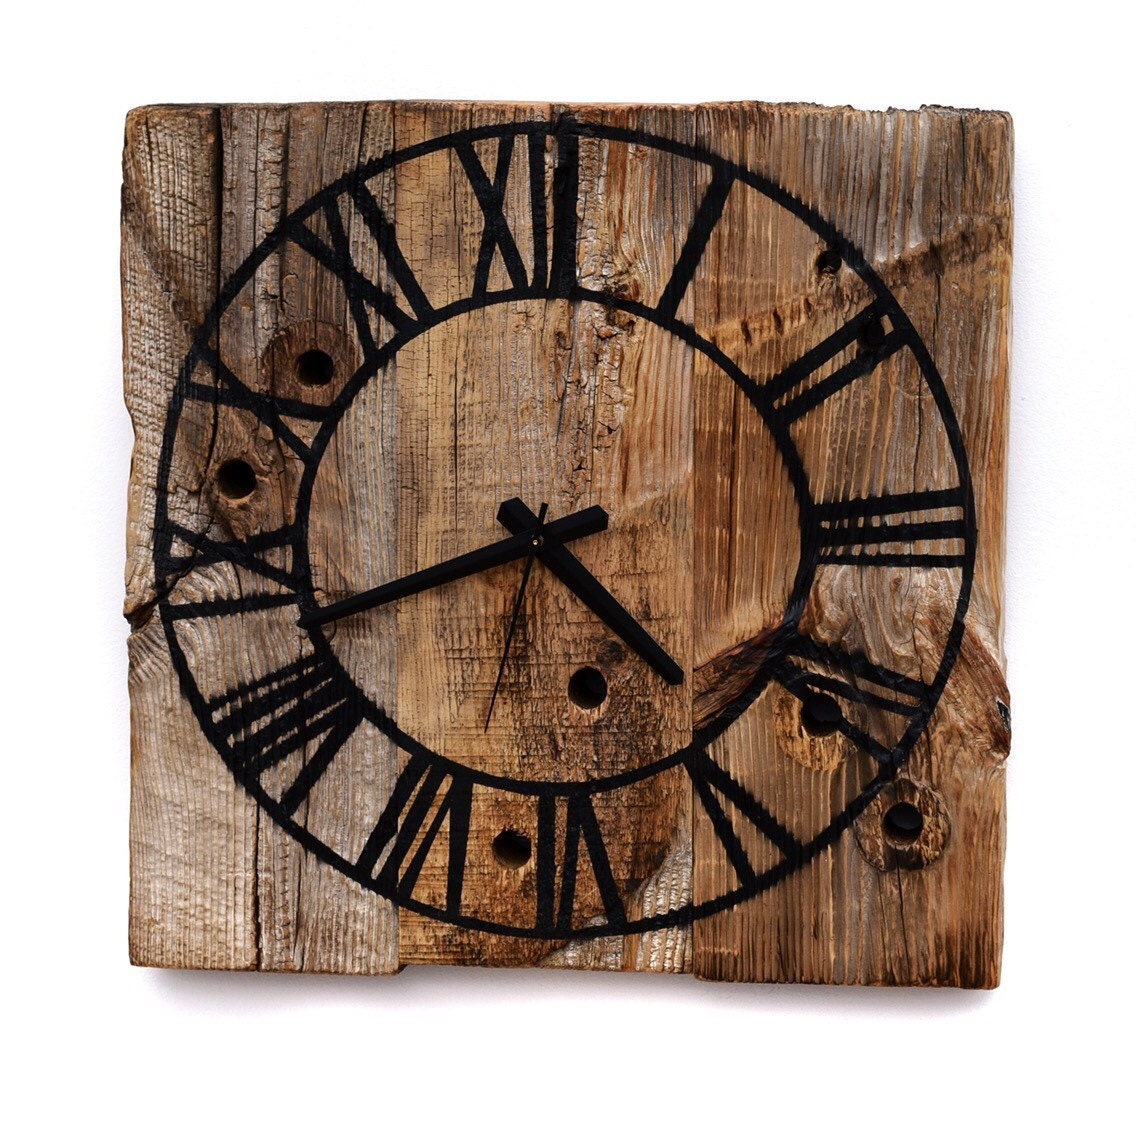 Rustic Wall Clock Reclaimed Barn Wood Clock Roman Numeral